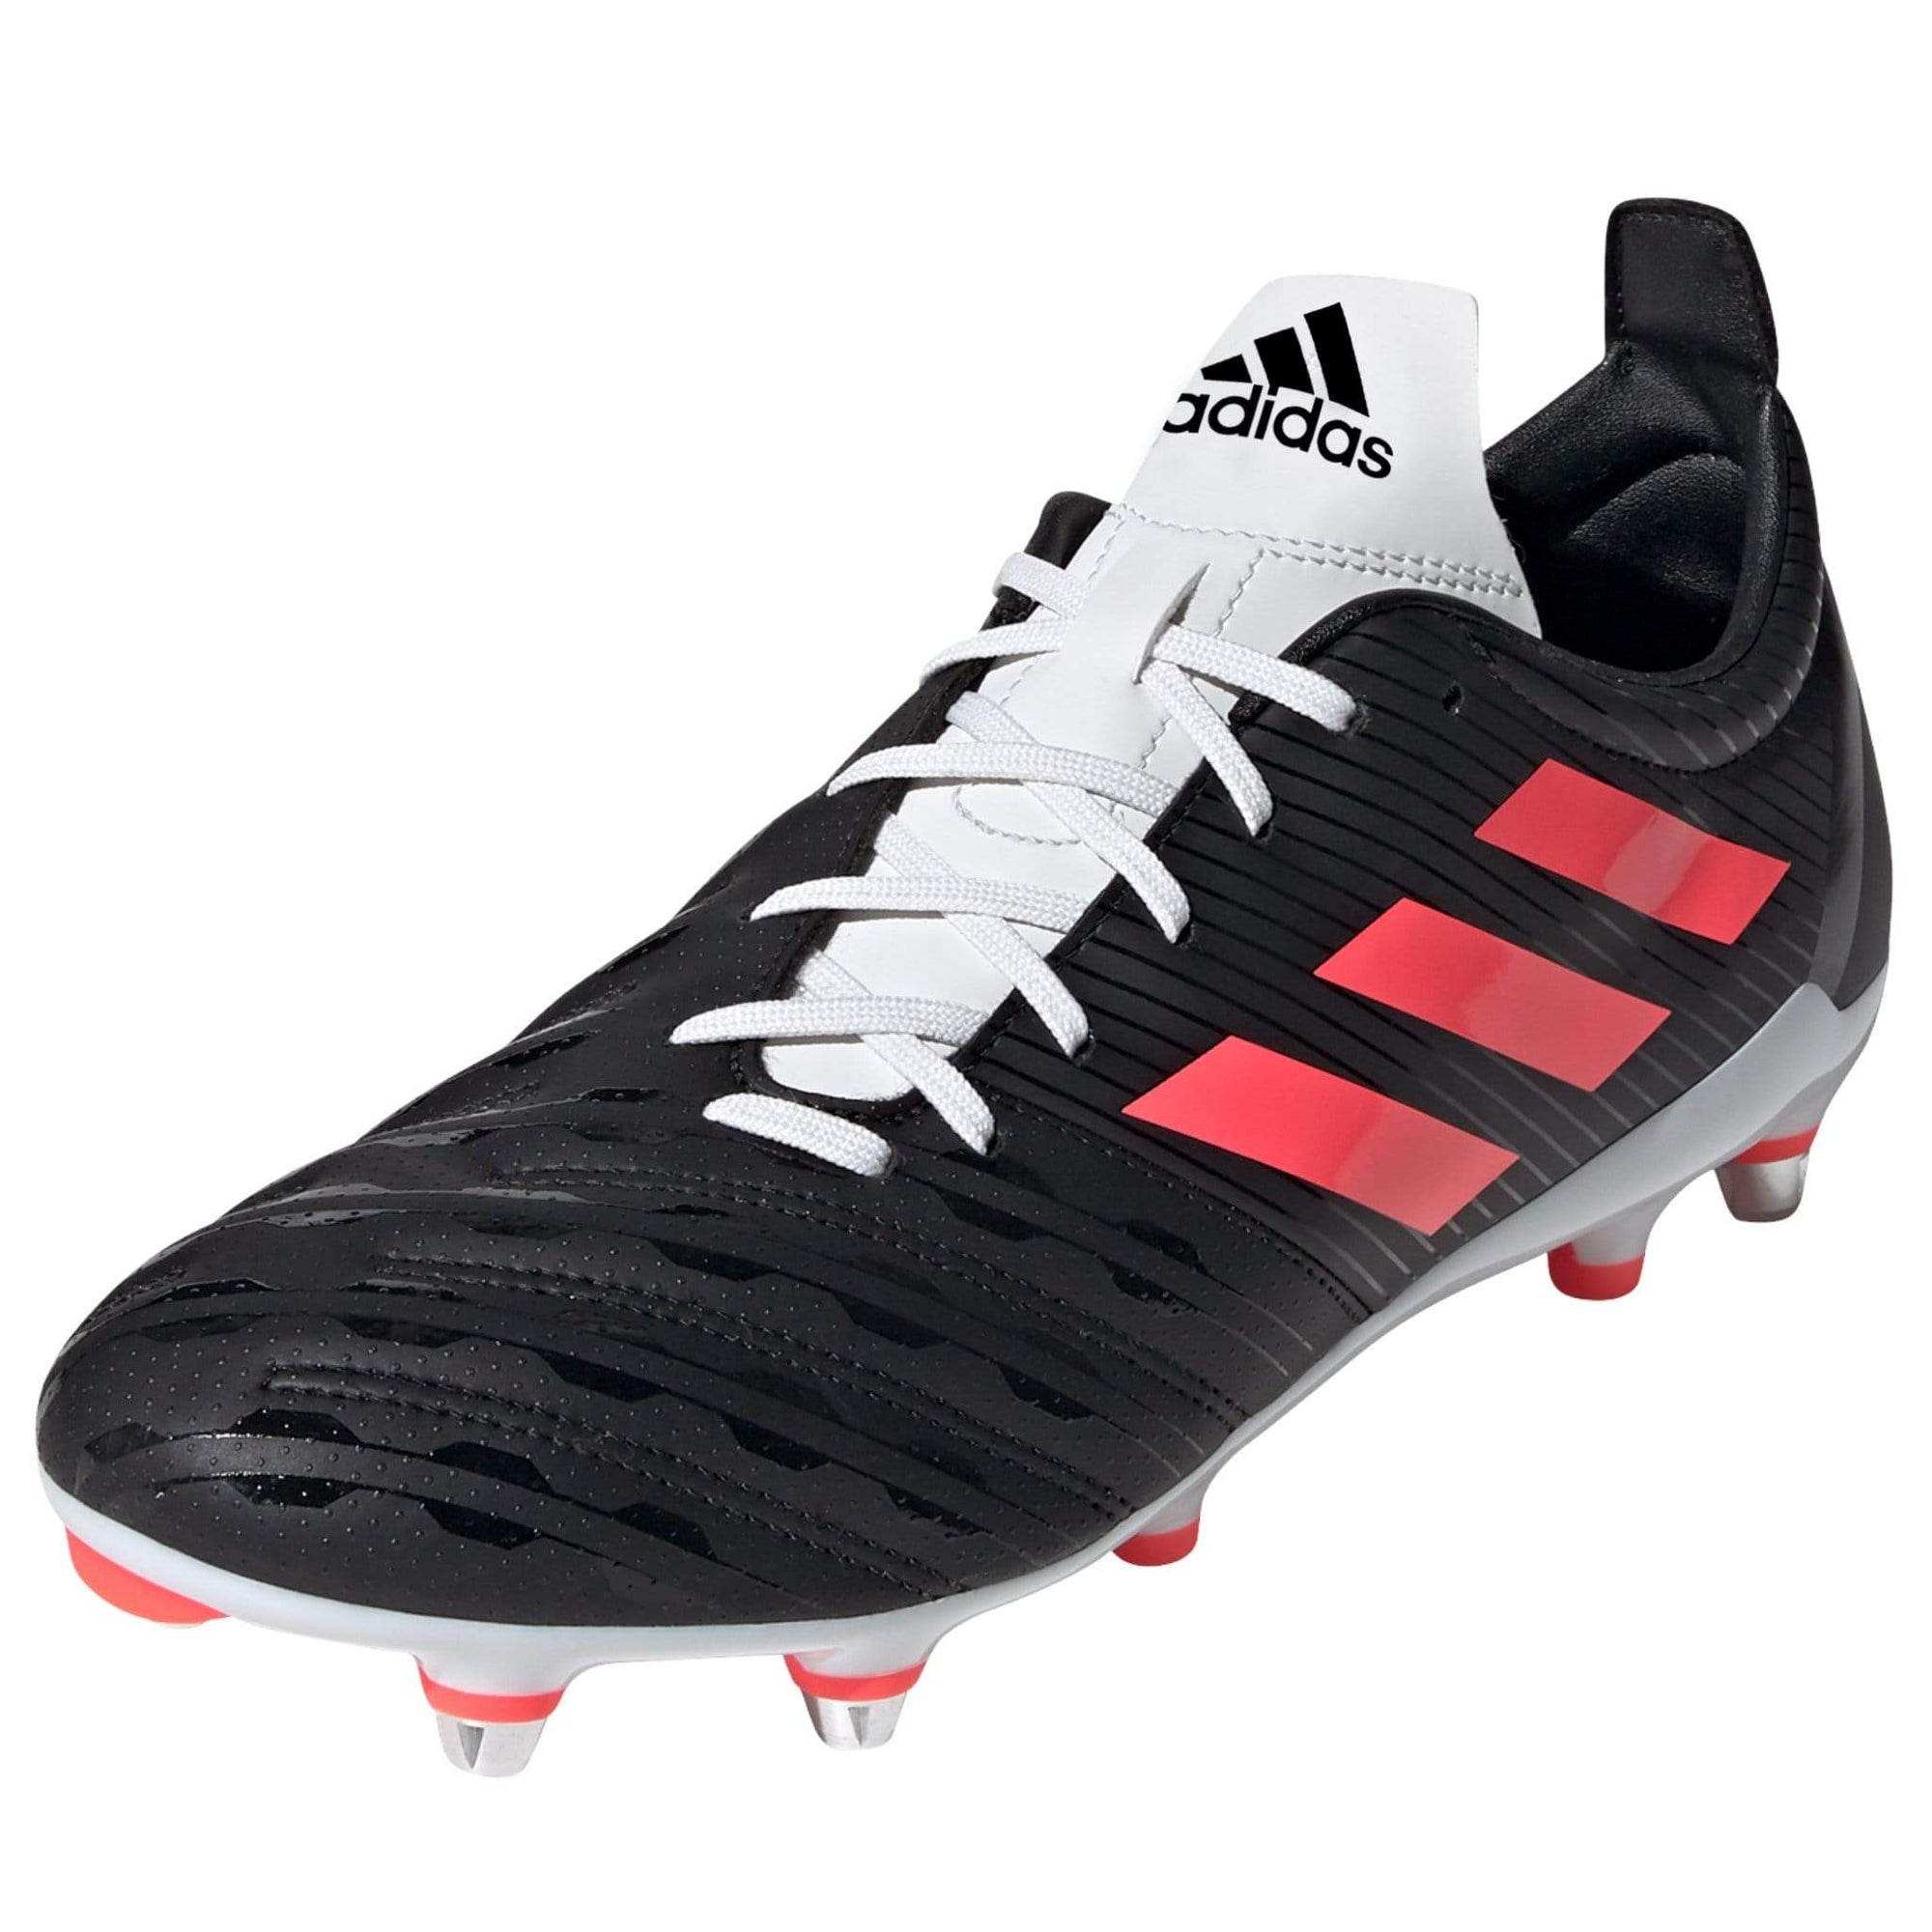 Black Adidas FW20 Malice SG Boots White Laces Pink Stripes